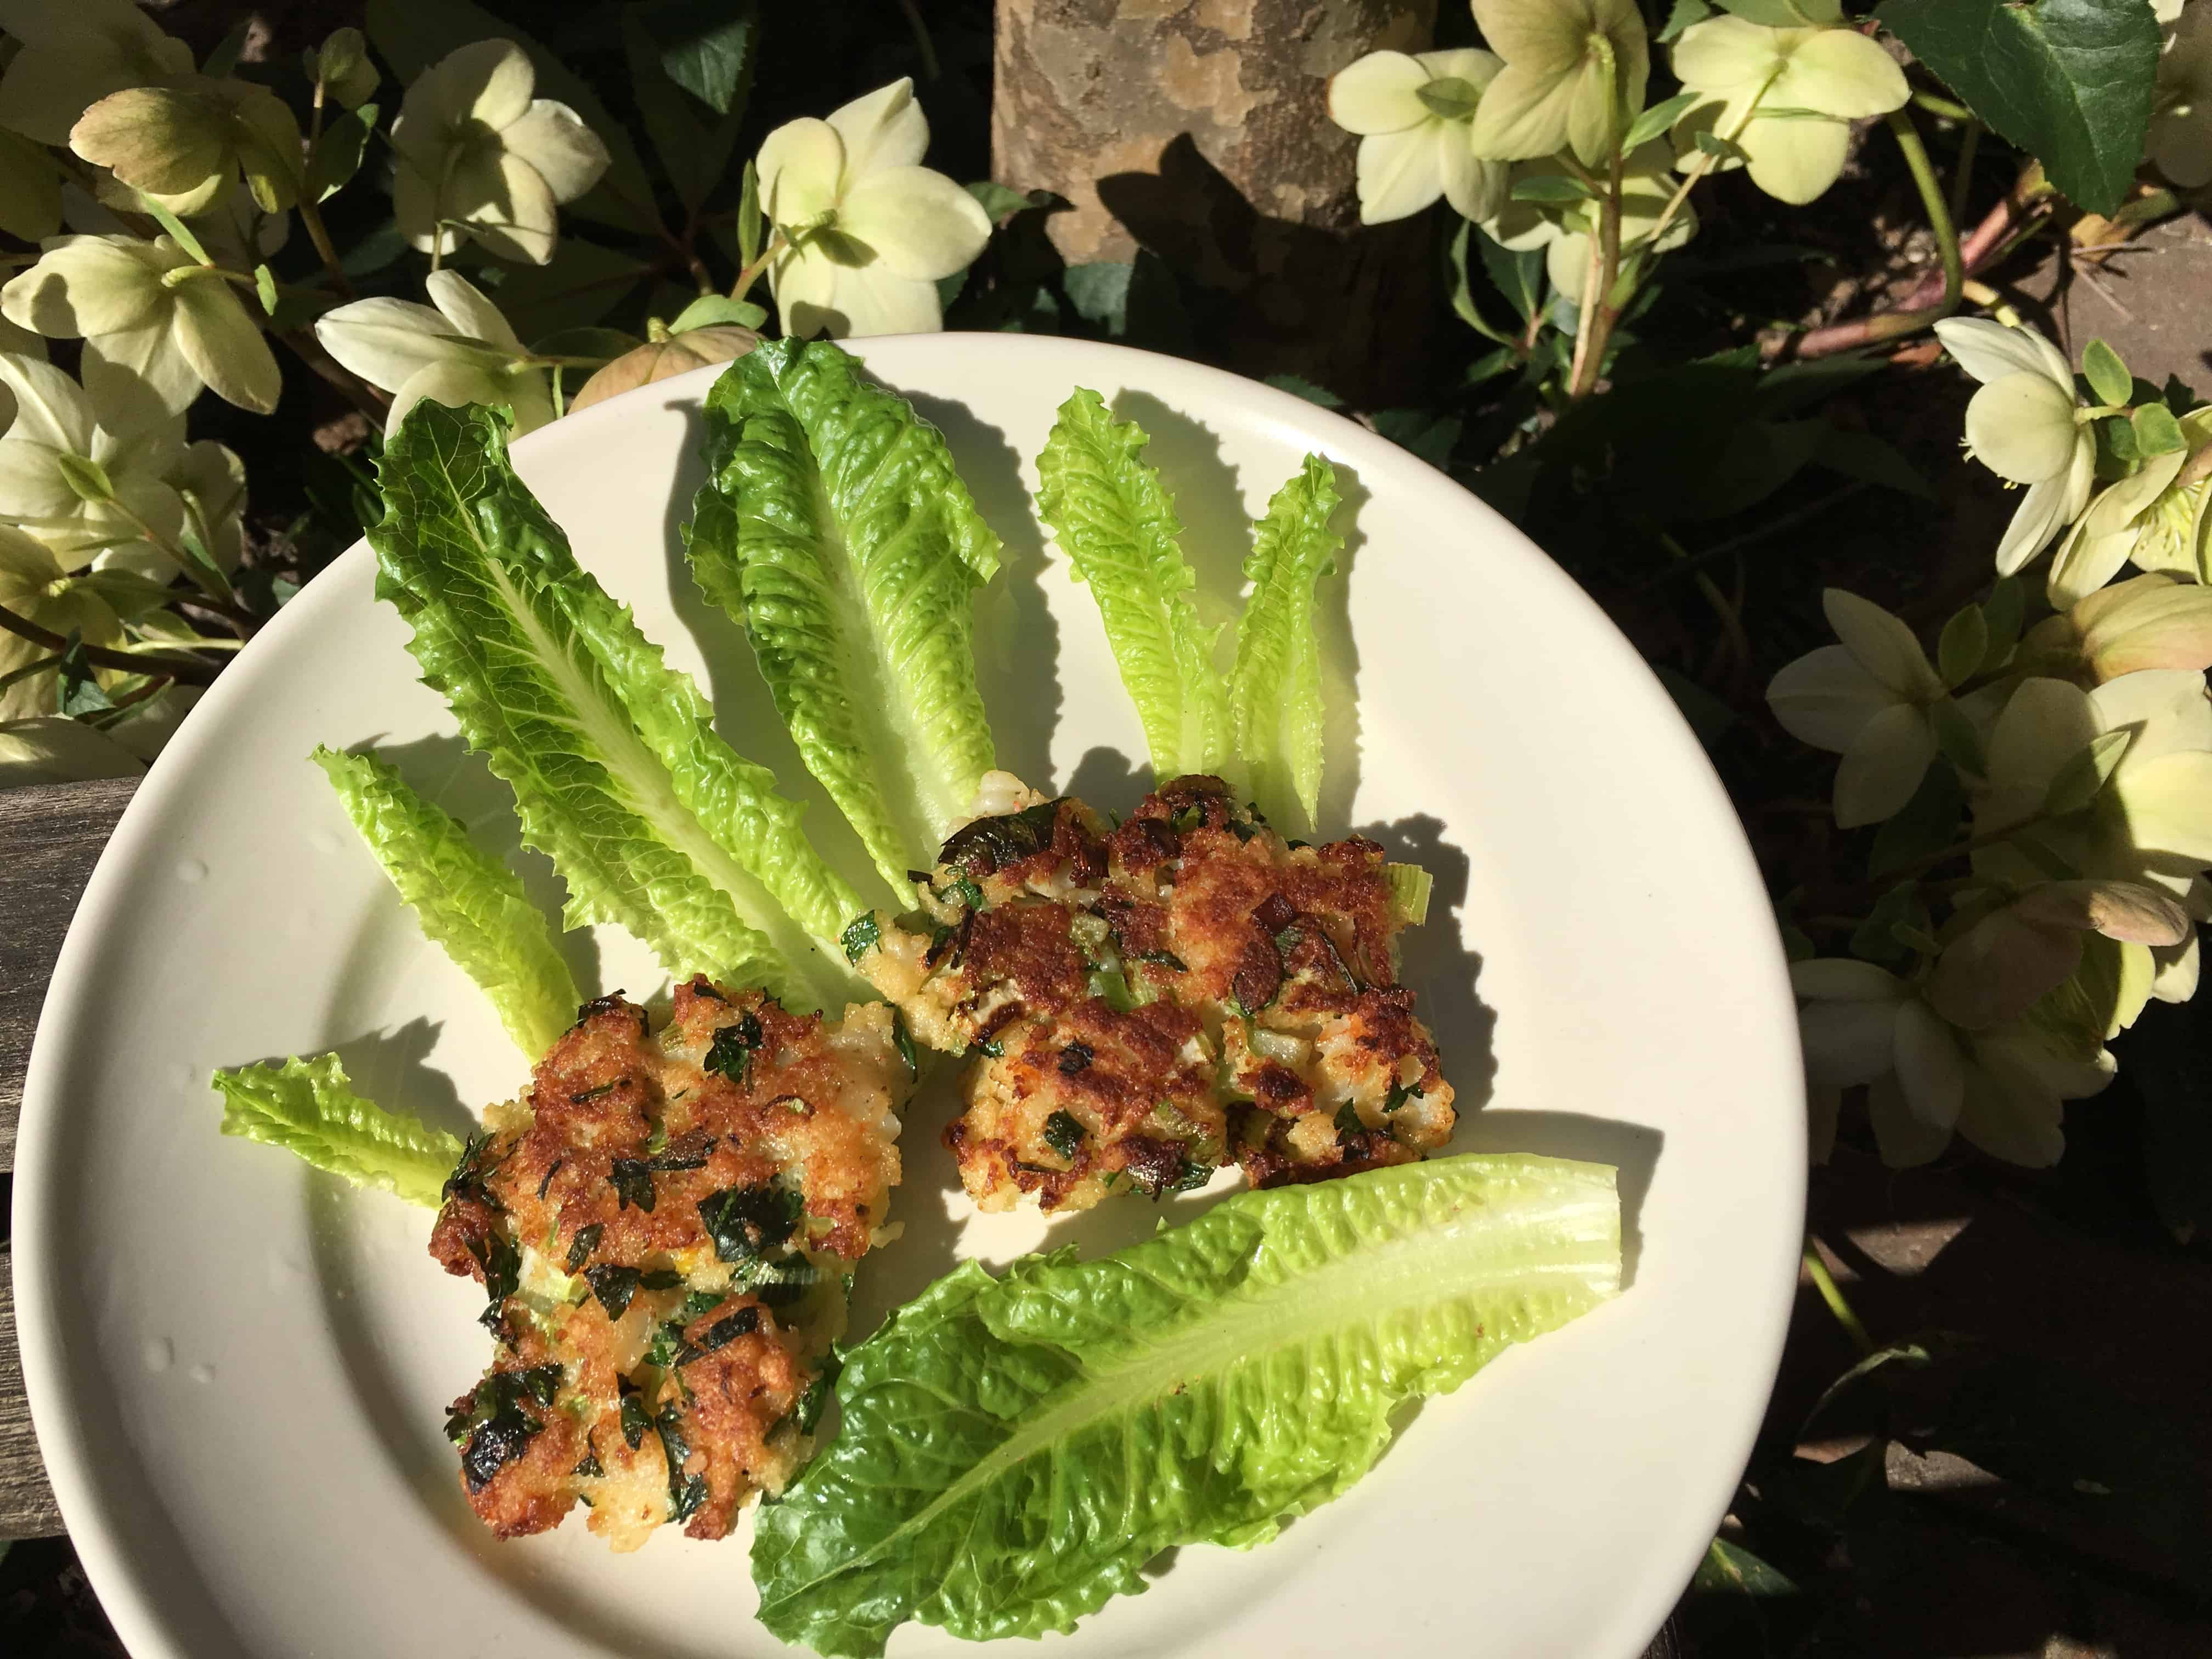 Shrimp Cakes with a view of the Hellebores blooming in the garden.